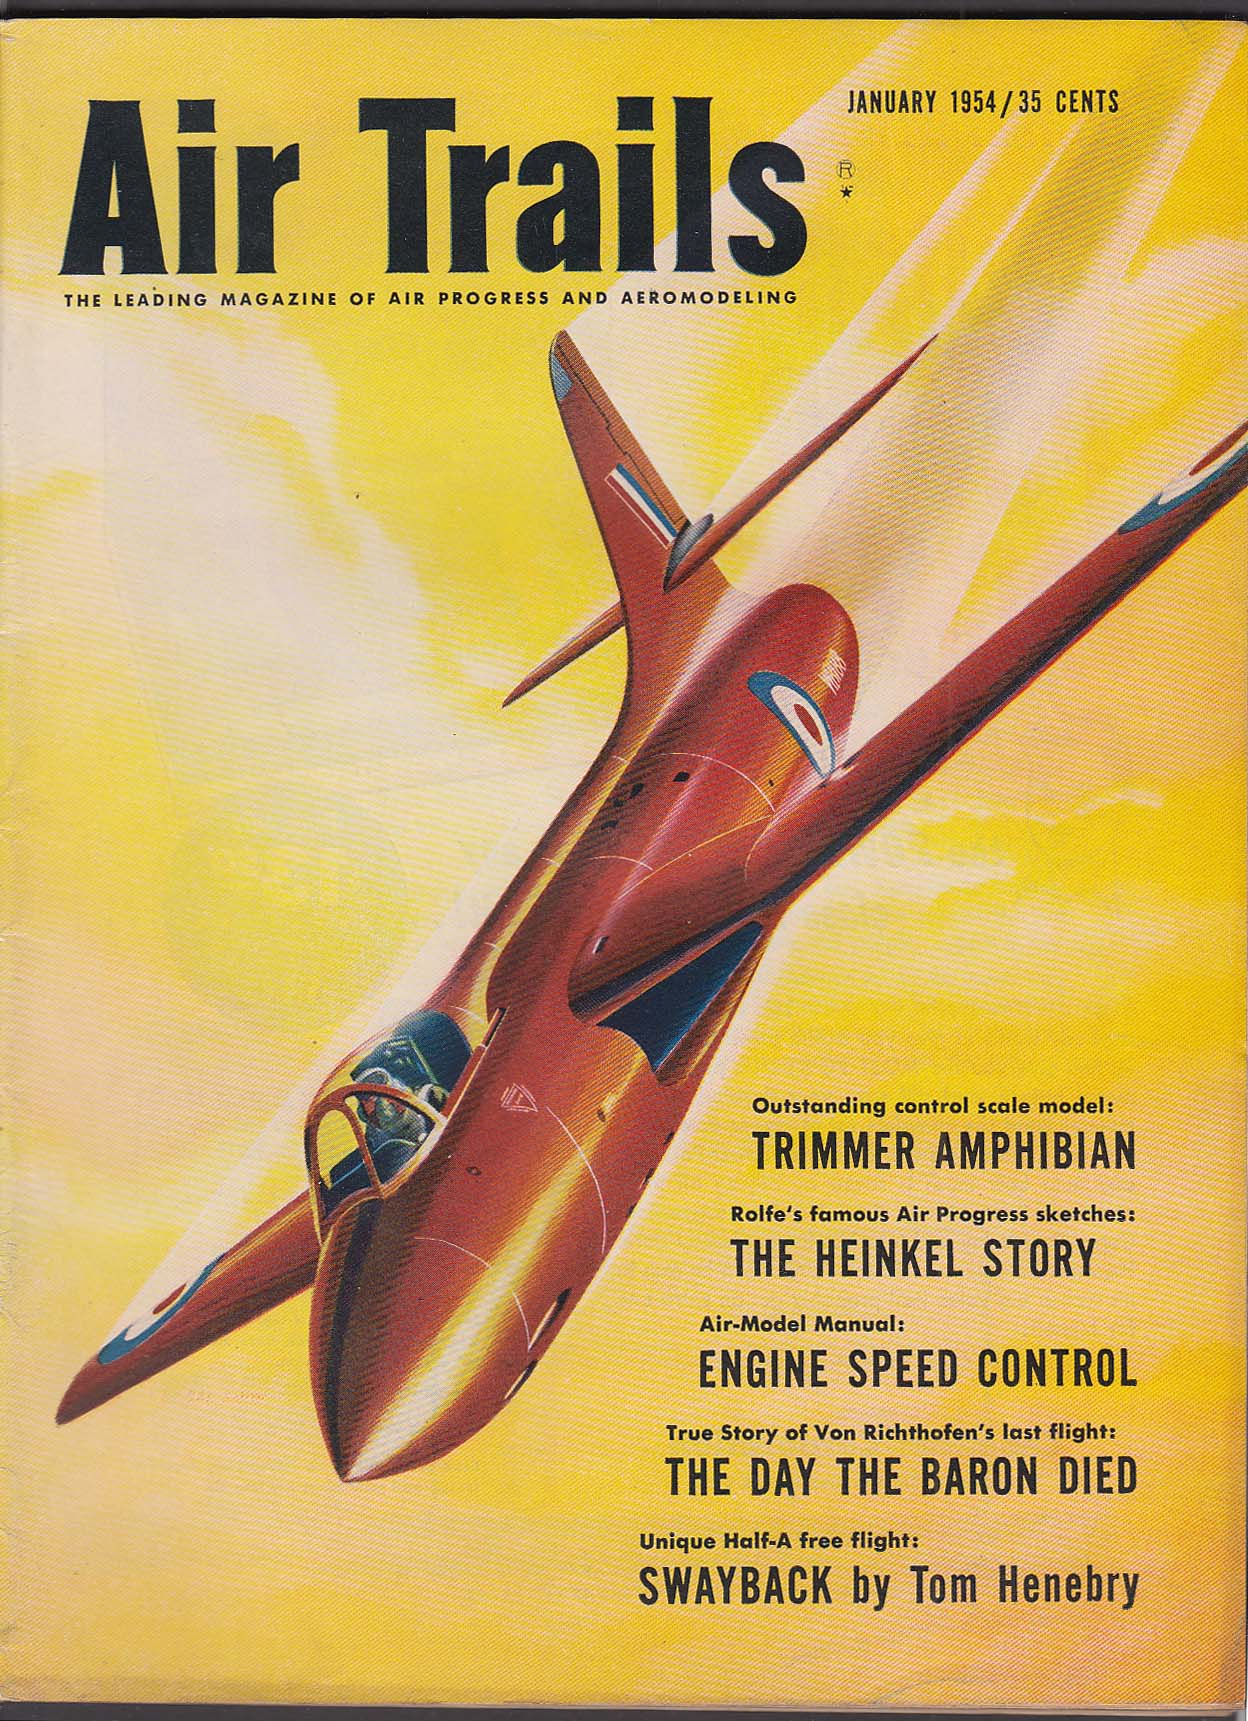 The Jumping Frog Rare Used And Out Of Print Books Magazines Schematic August 1958 American Modeler Airplanes Rockets Air Trails Trimmer Amphibian Heinkel Von Richthofen Swayback 1 1954